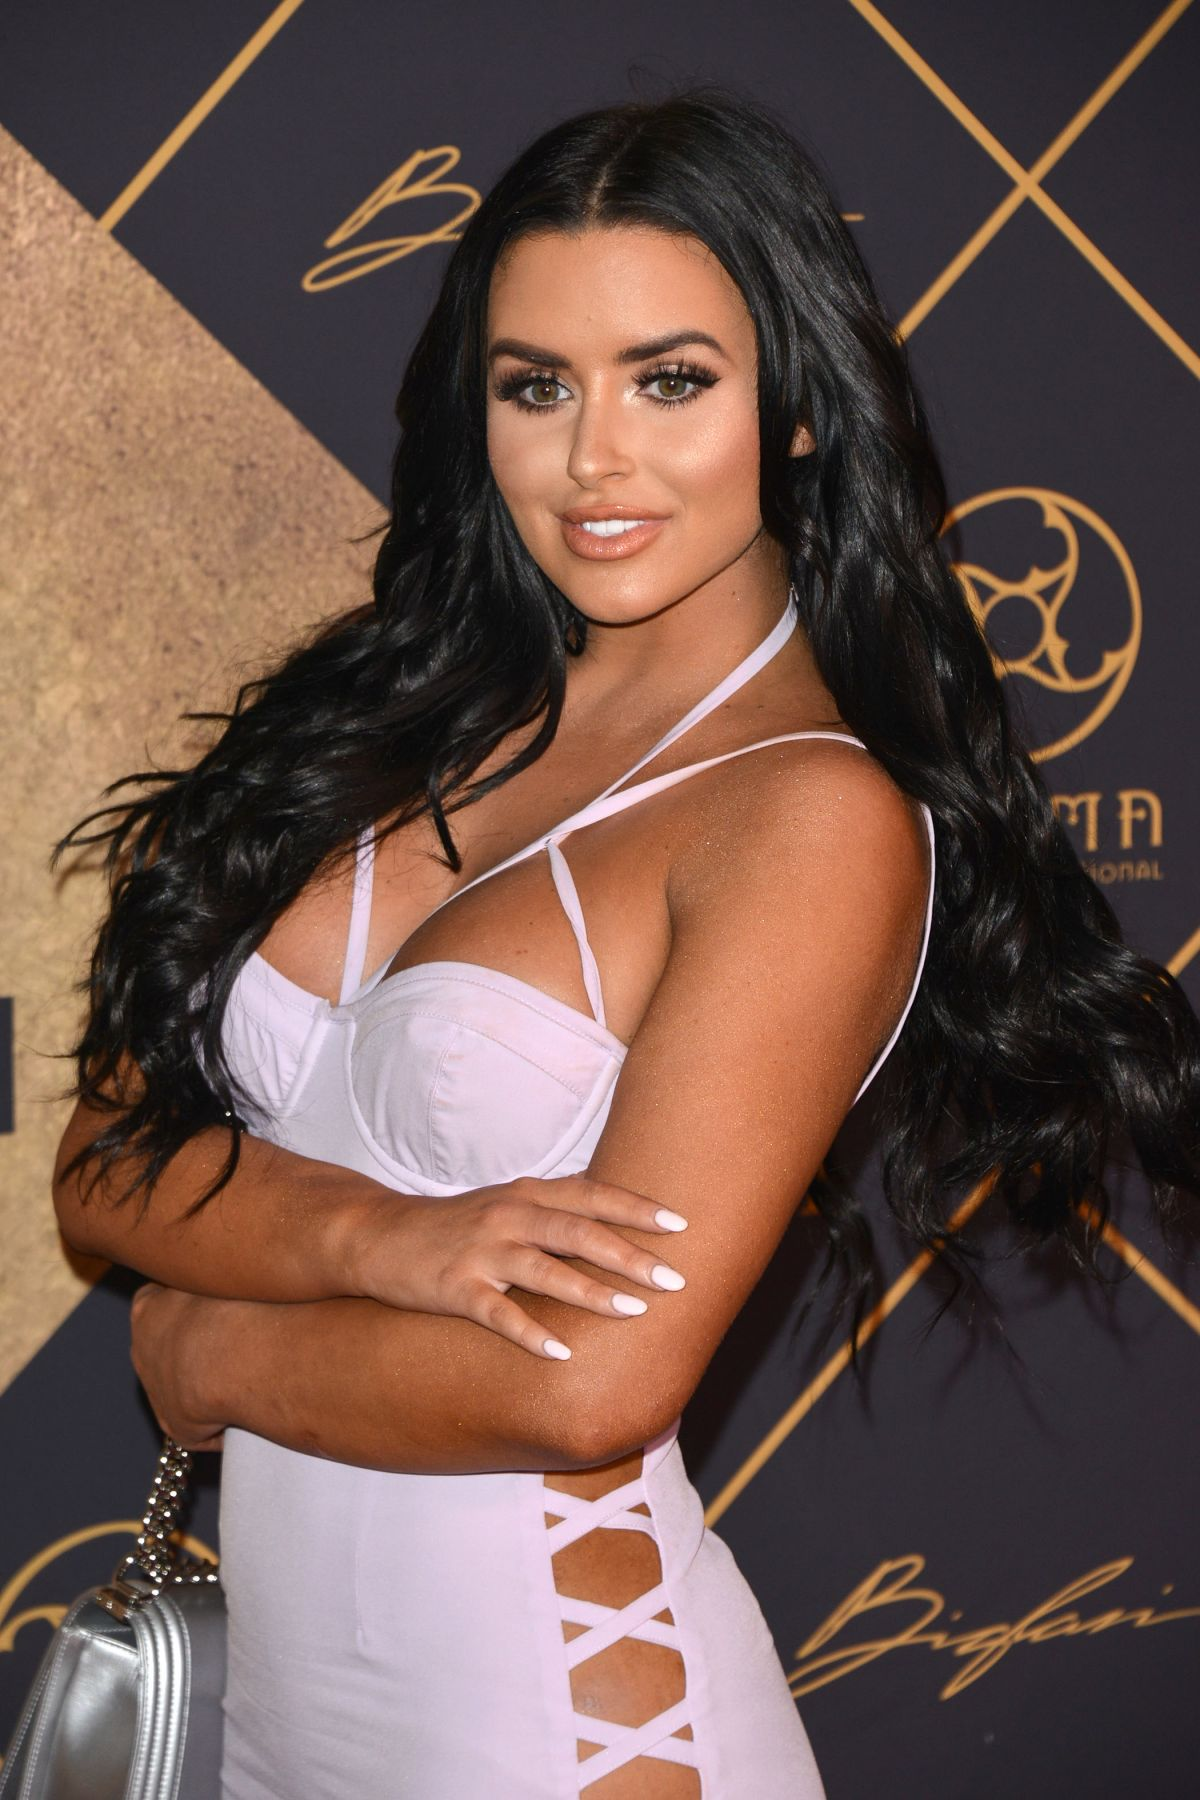 Hot Abigail Ratchford nudes (26 foto and video), Topless, Leaked, Boobs, lingerie 2019